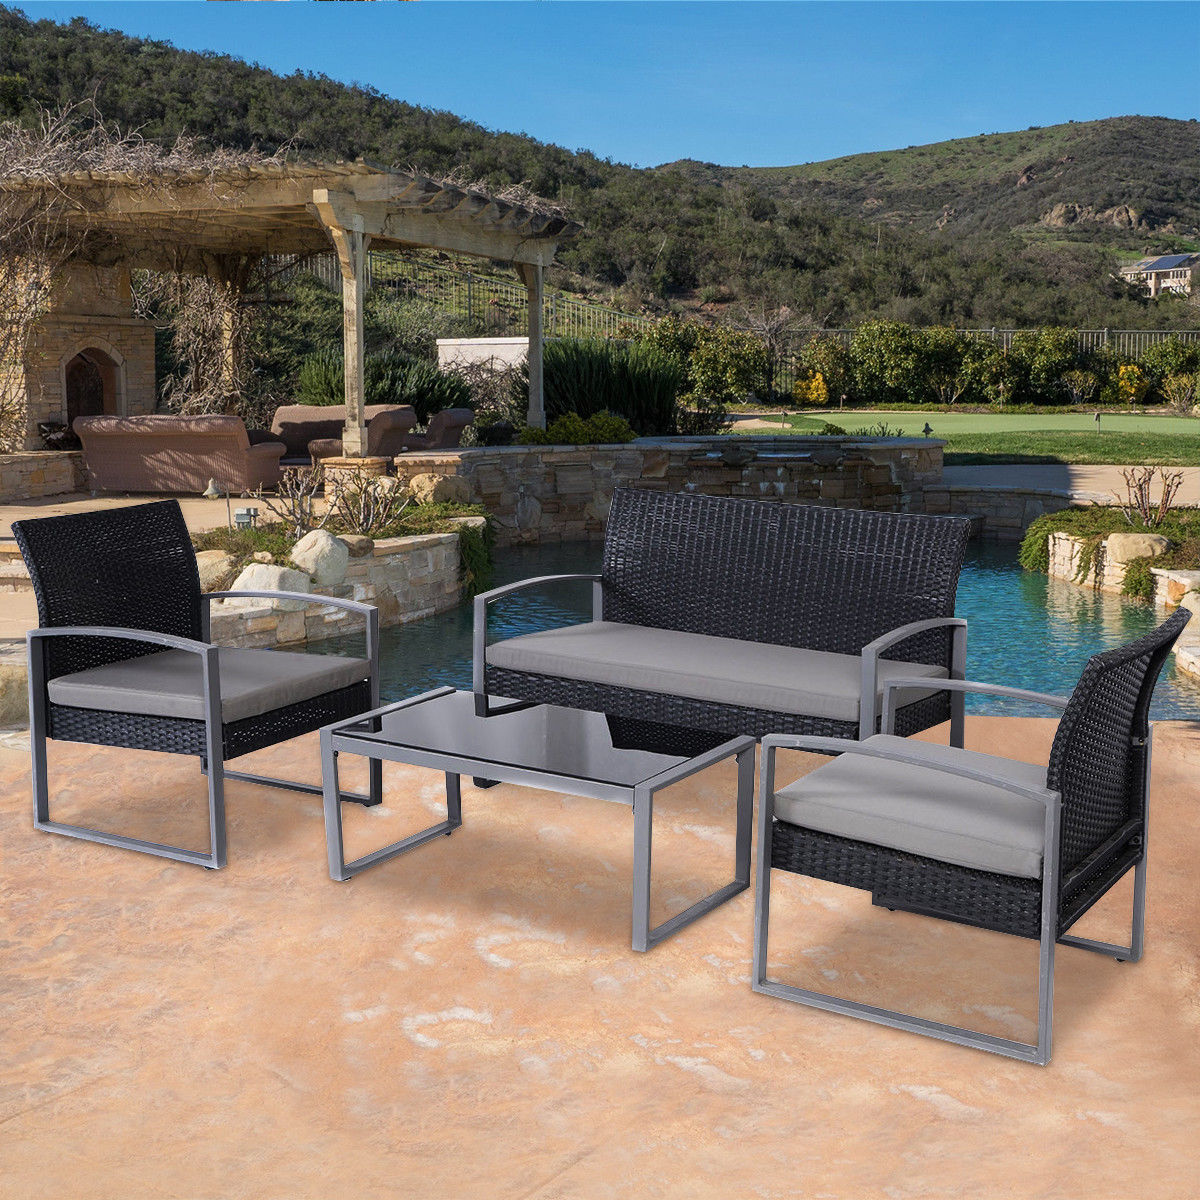 walmart wicker patio furniture sets Costway 4 PCS Outdoor Patio Garden Black Rattan Wicker